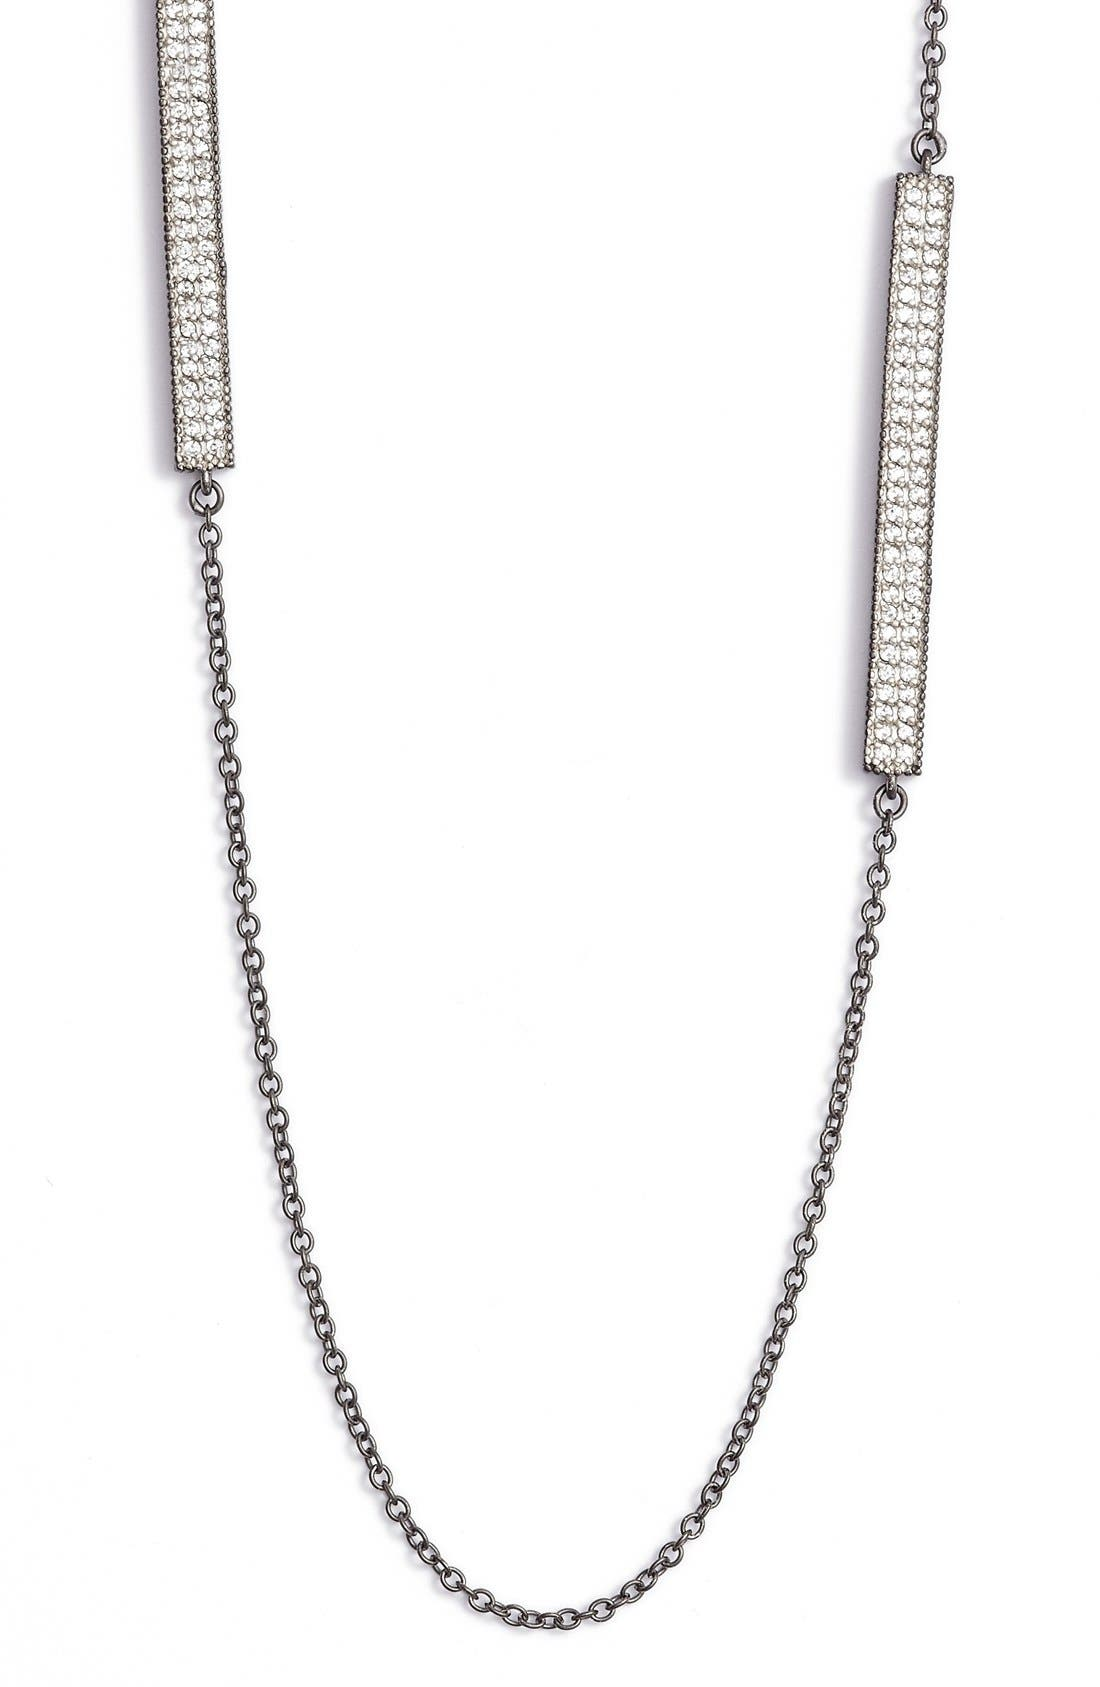 Contemporary Deco Station Necklace,                             Alternate thumbnail 4, color,                             SILVER/ GUNMETAL